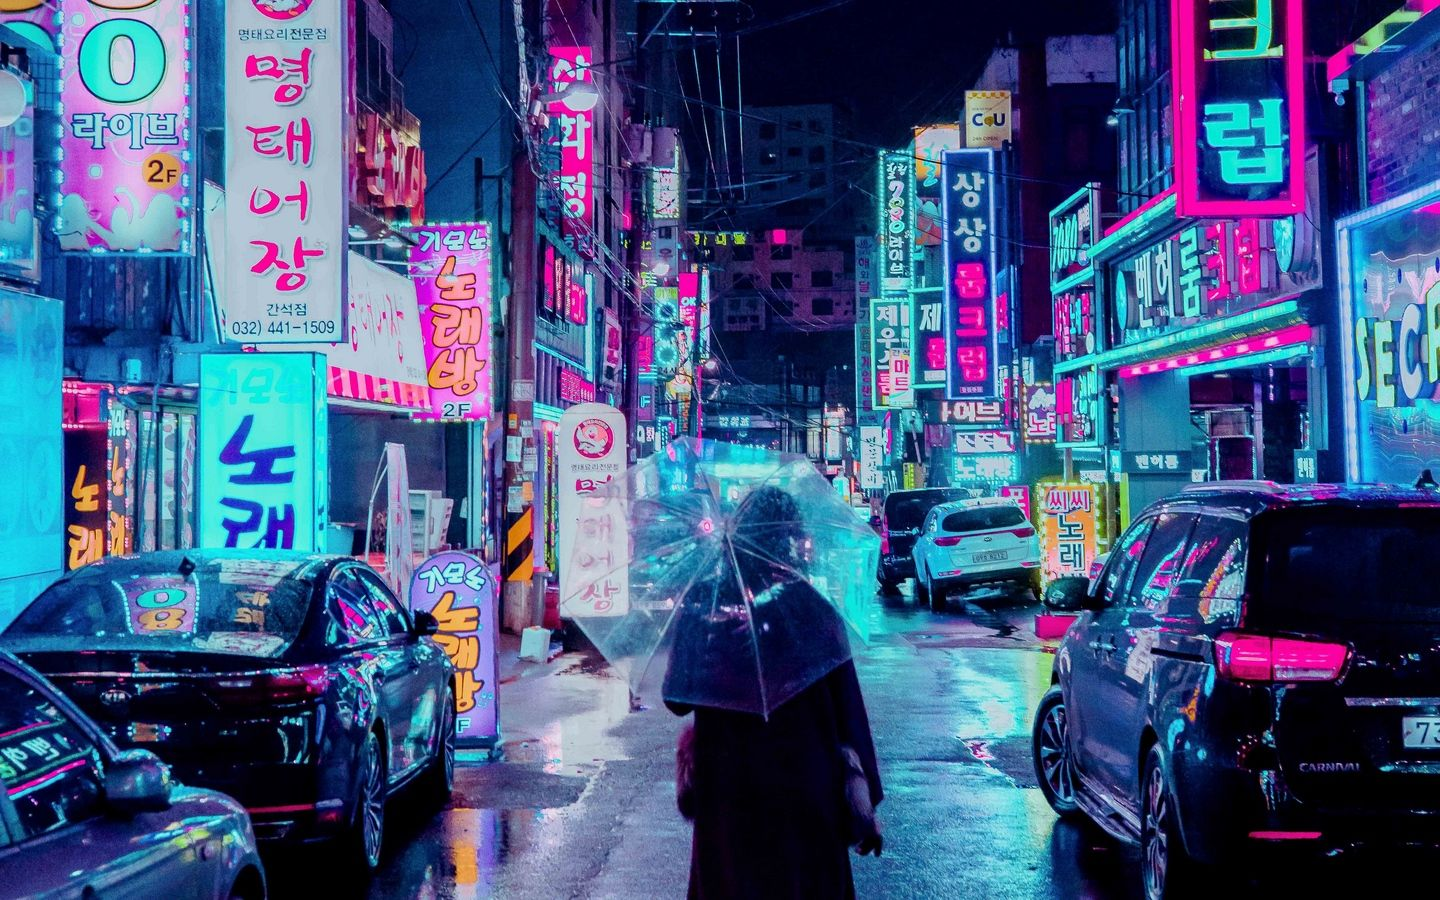 1440x900 Wallpaper Night City Street Umbrella Man Signboards Lighting Neon Papel De Parede Da Cidade Papel De Parede Neon Papel De Parede Vaporwave